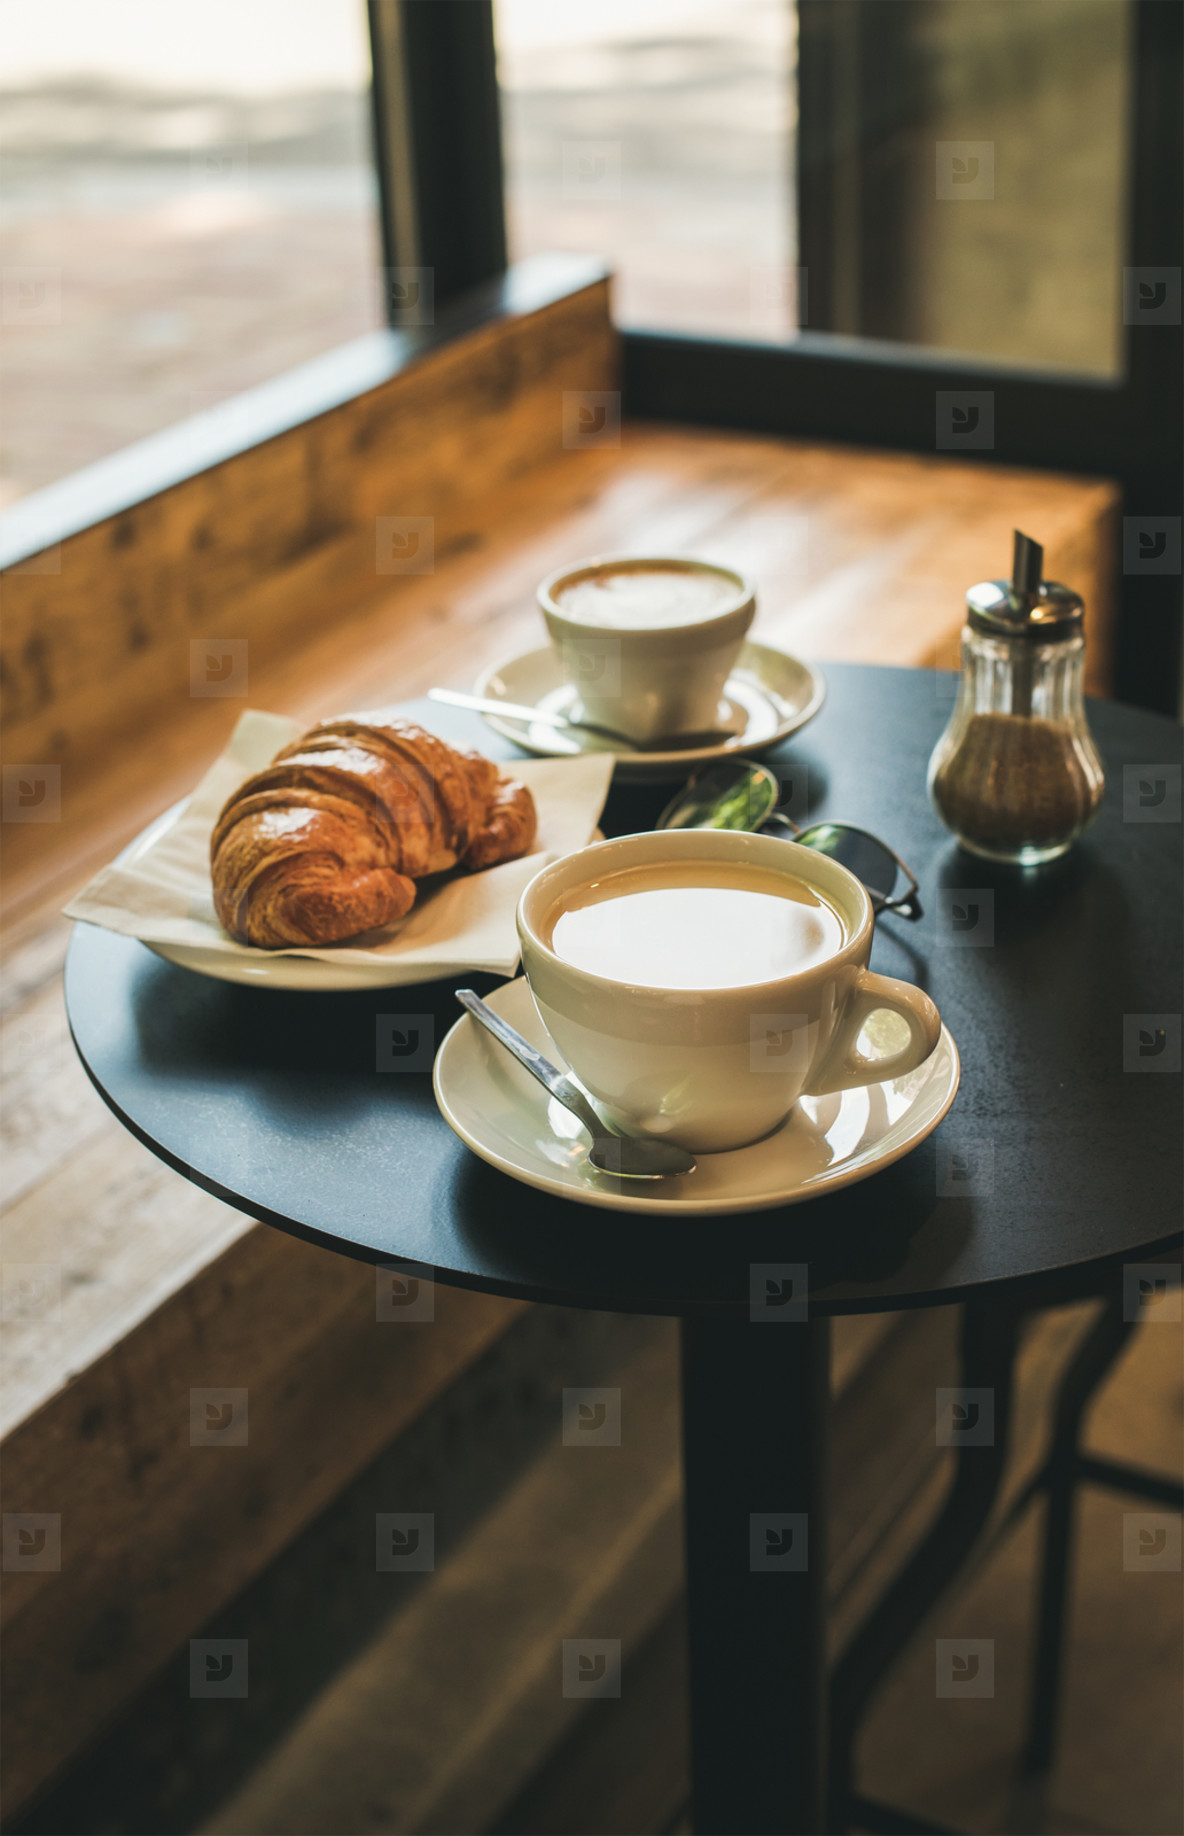 Coffee latte  cappuccino and croissant on small table in cafe